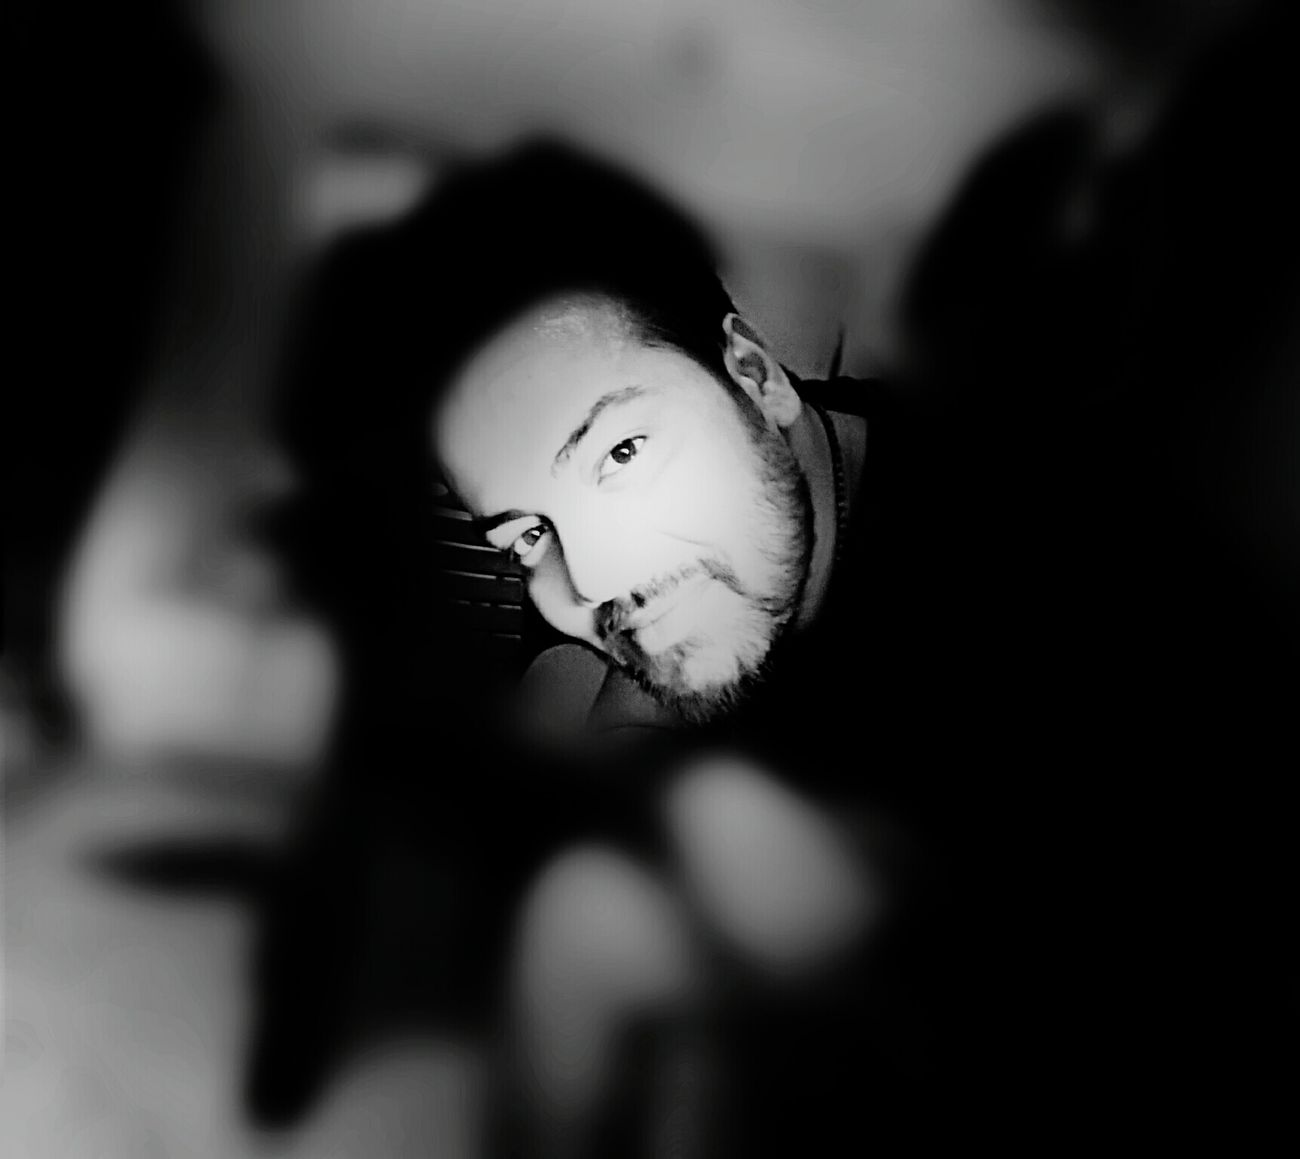 Hello World Inside My Room Alone Time Check This Out That's Me! Model Black And White Self Portrait Great Evening Portrait Of A Man  😊😊😊 Smile